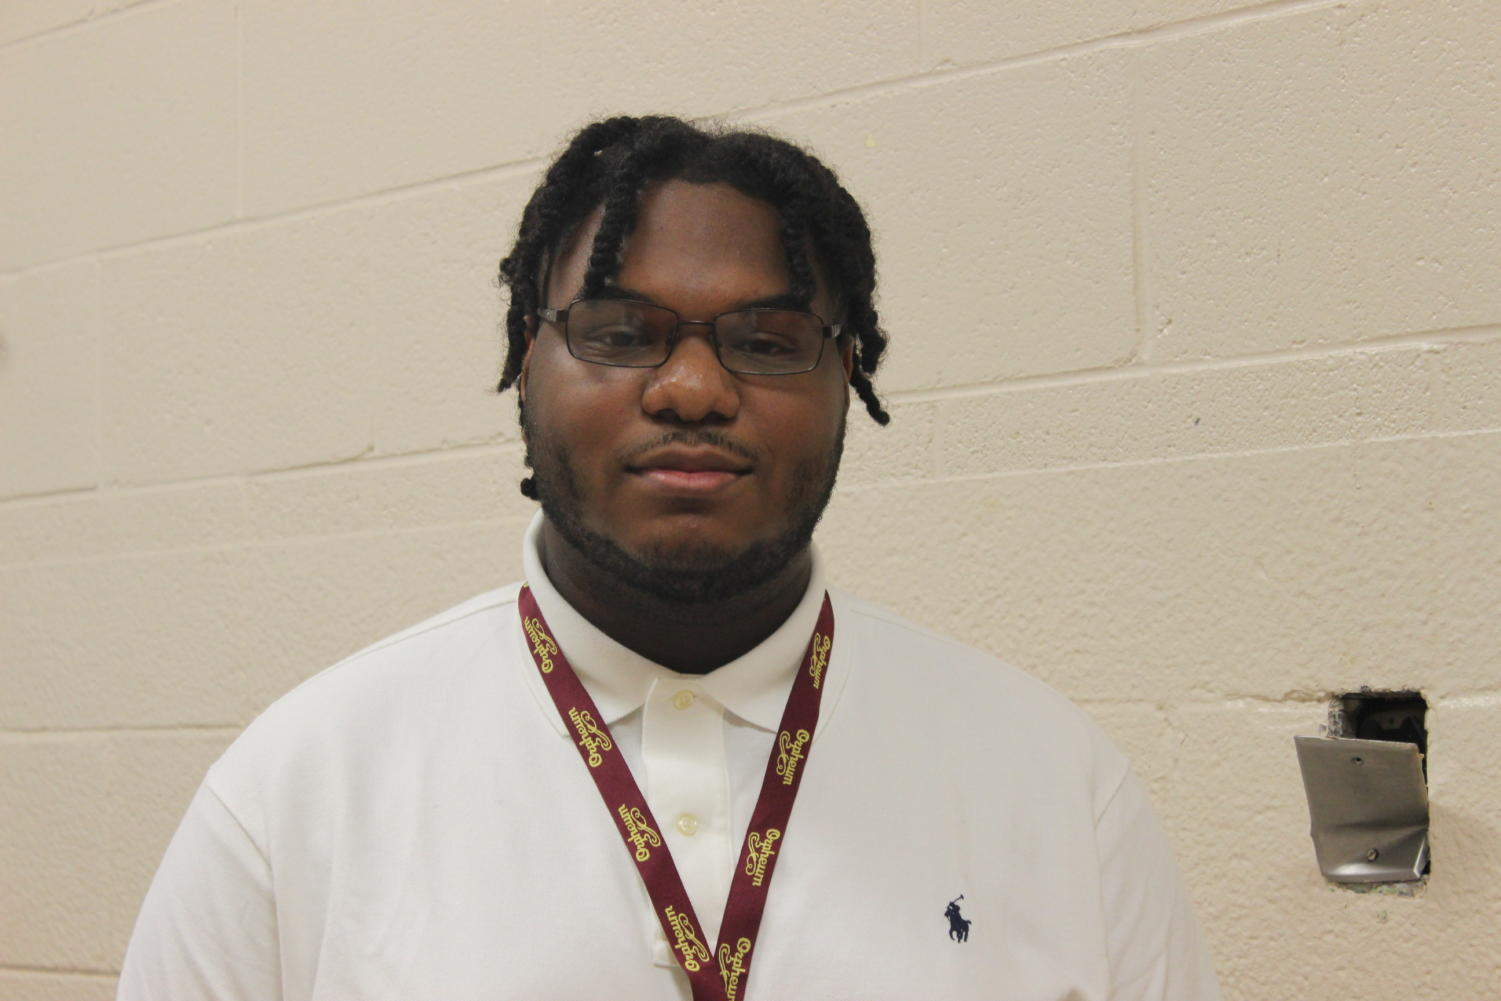 The White Station Orchstras gained a new student teacher this year, Matthew Finley. A not-so-distant graduate of Overton High School, he is earning his education degree at the University of Memphis.